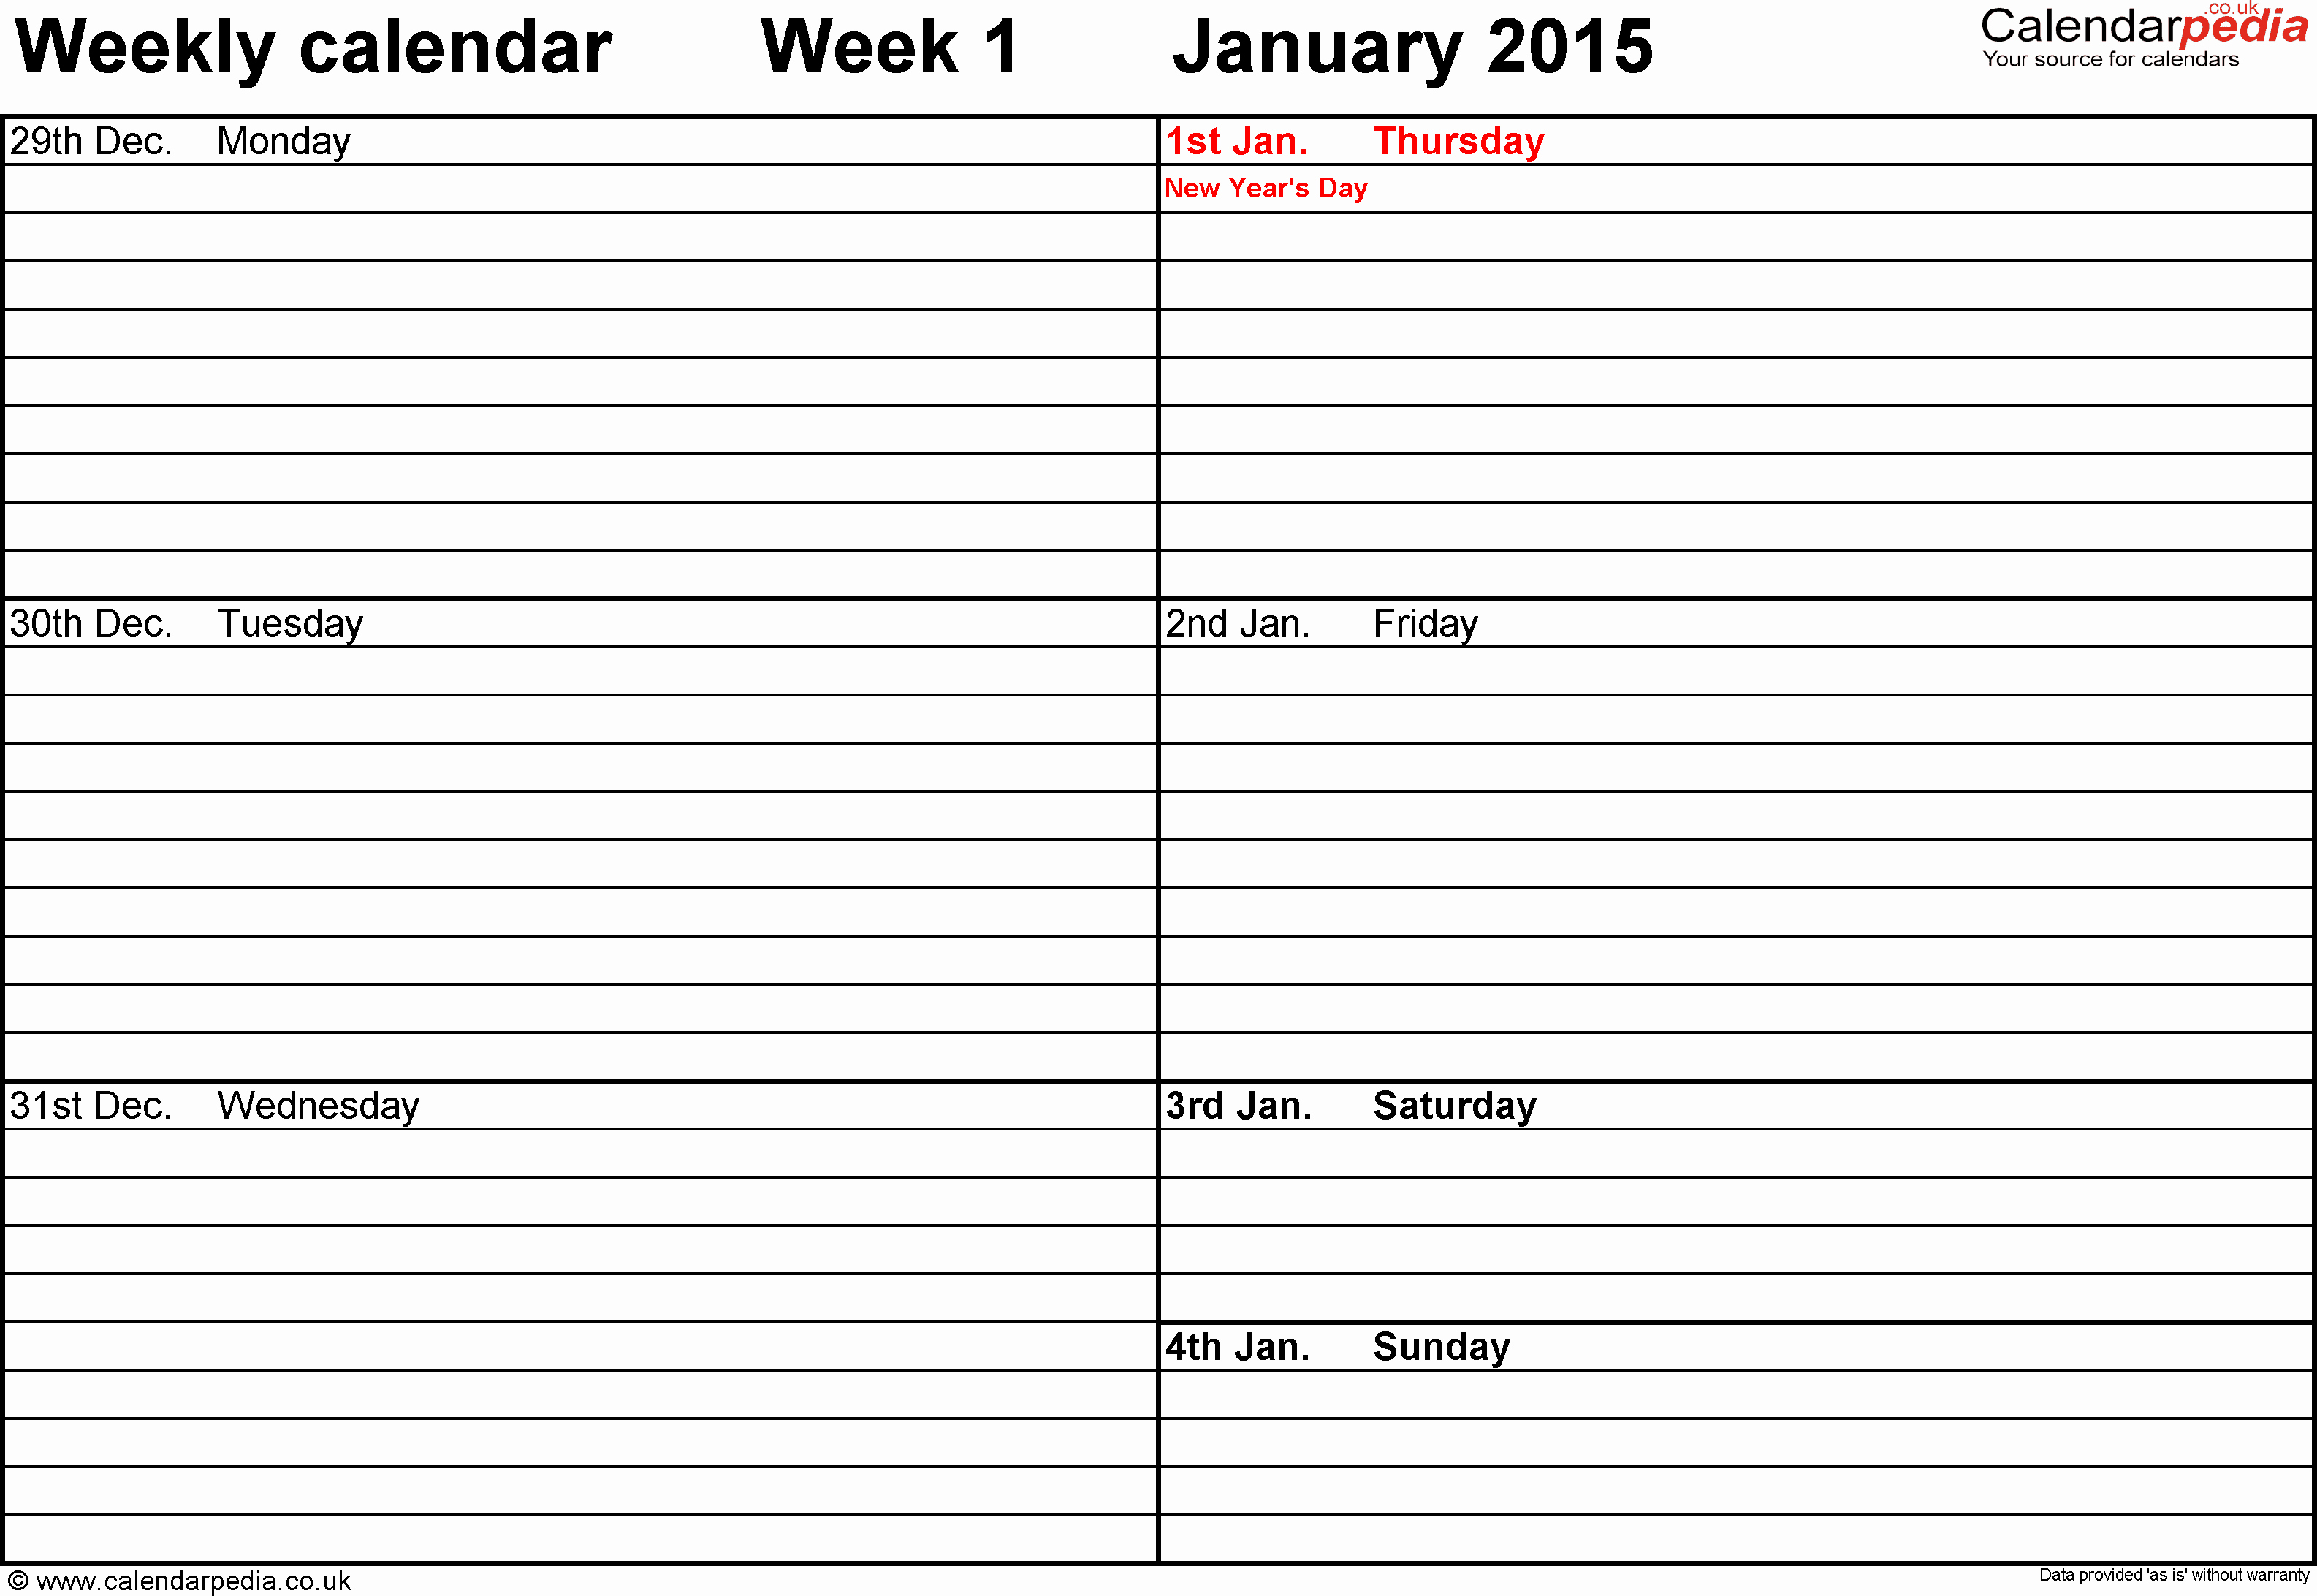 Week by Week Calendar Template Elegant Weekly Calendar 2015 Uk Free Printable Templates for Word